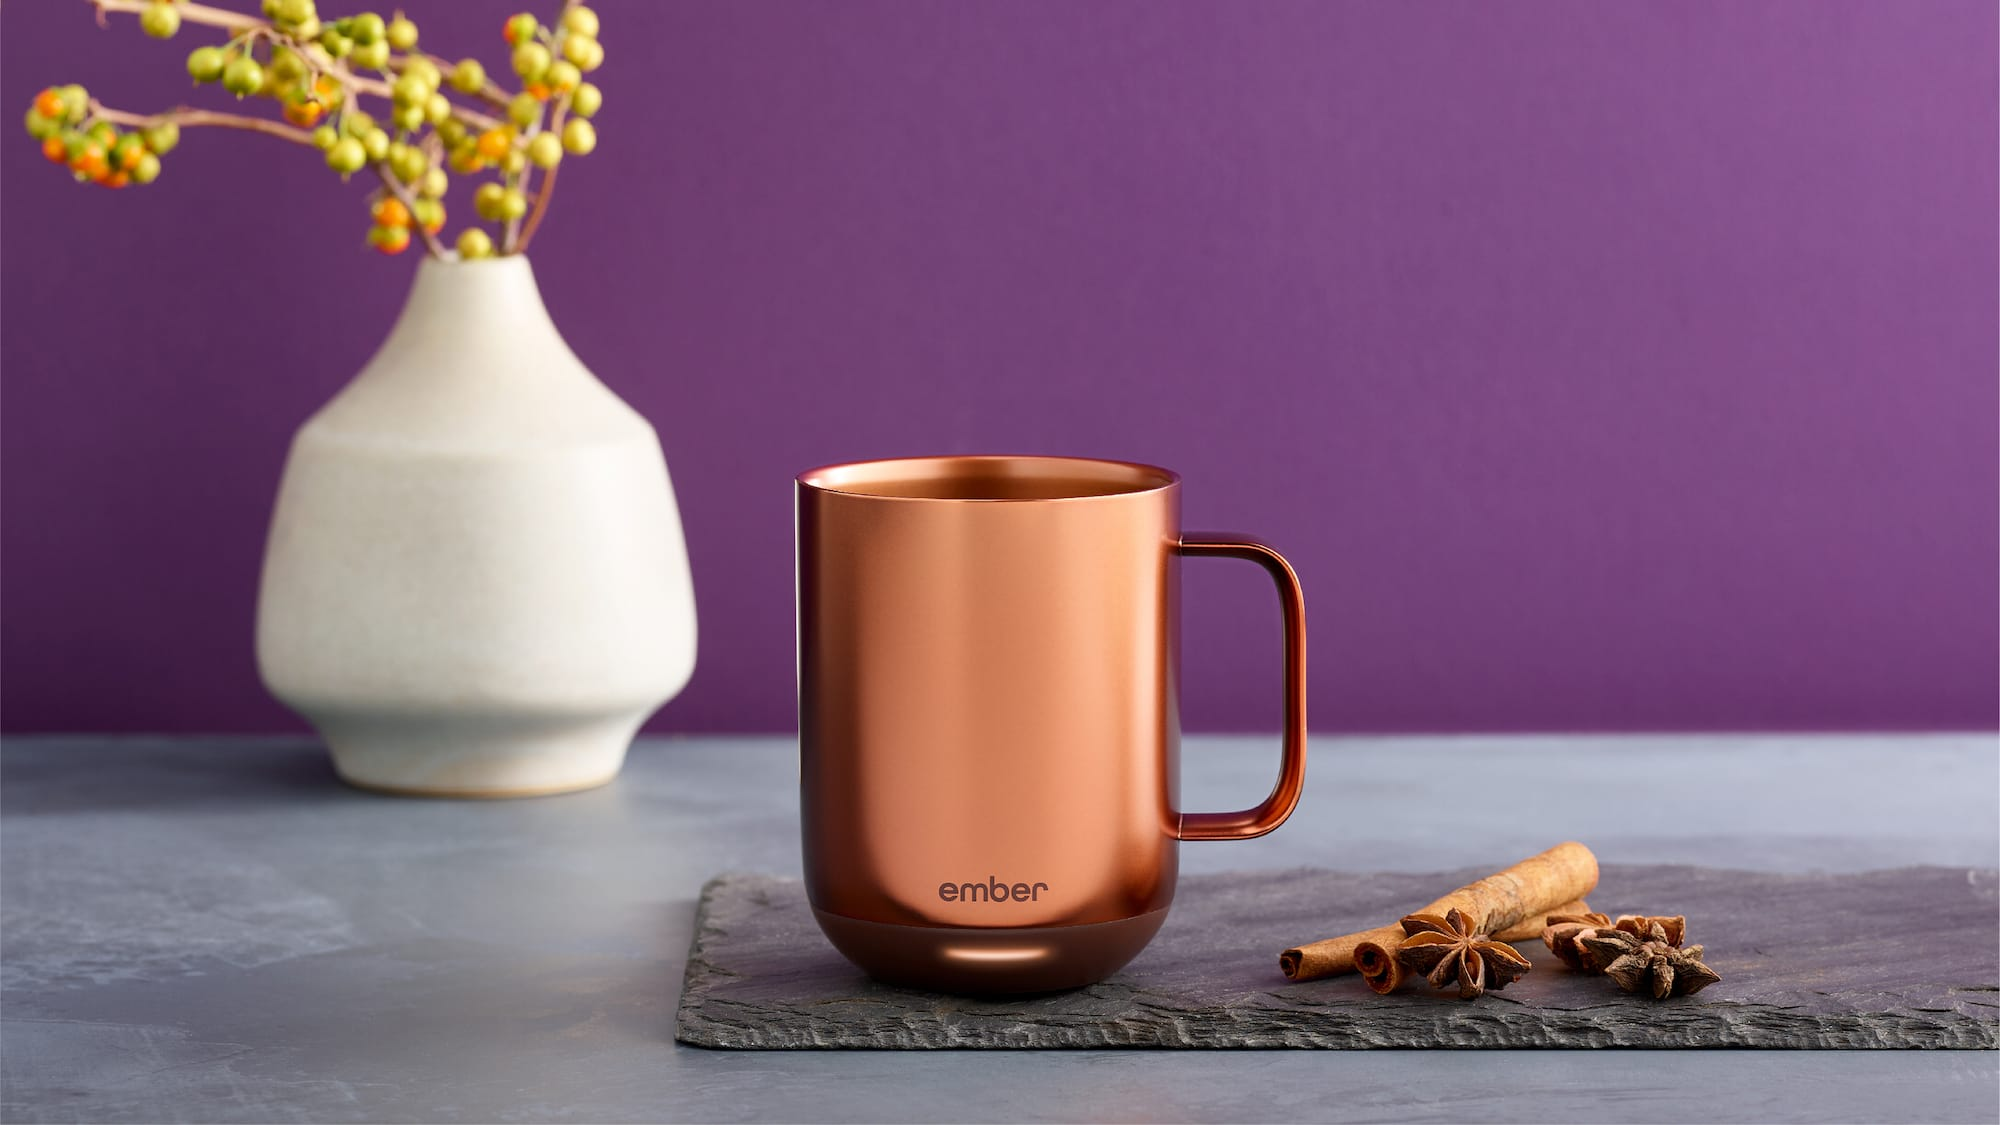 Ember Mug² Metallic Collection connected copper mug keeps your coffee hot 90 minutes